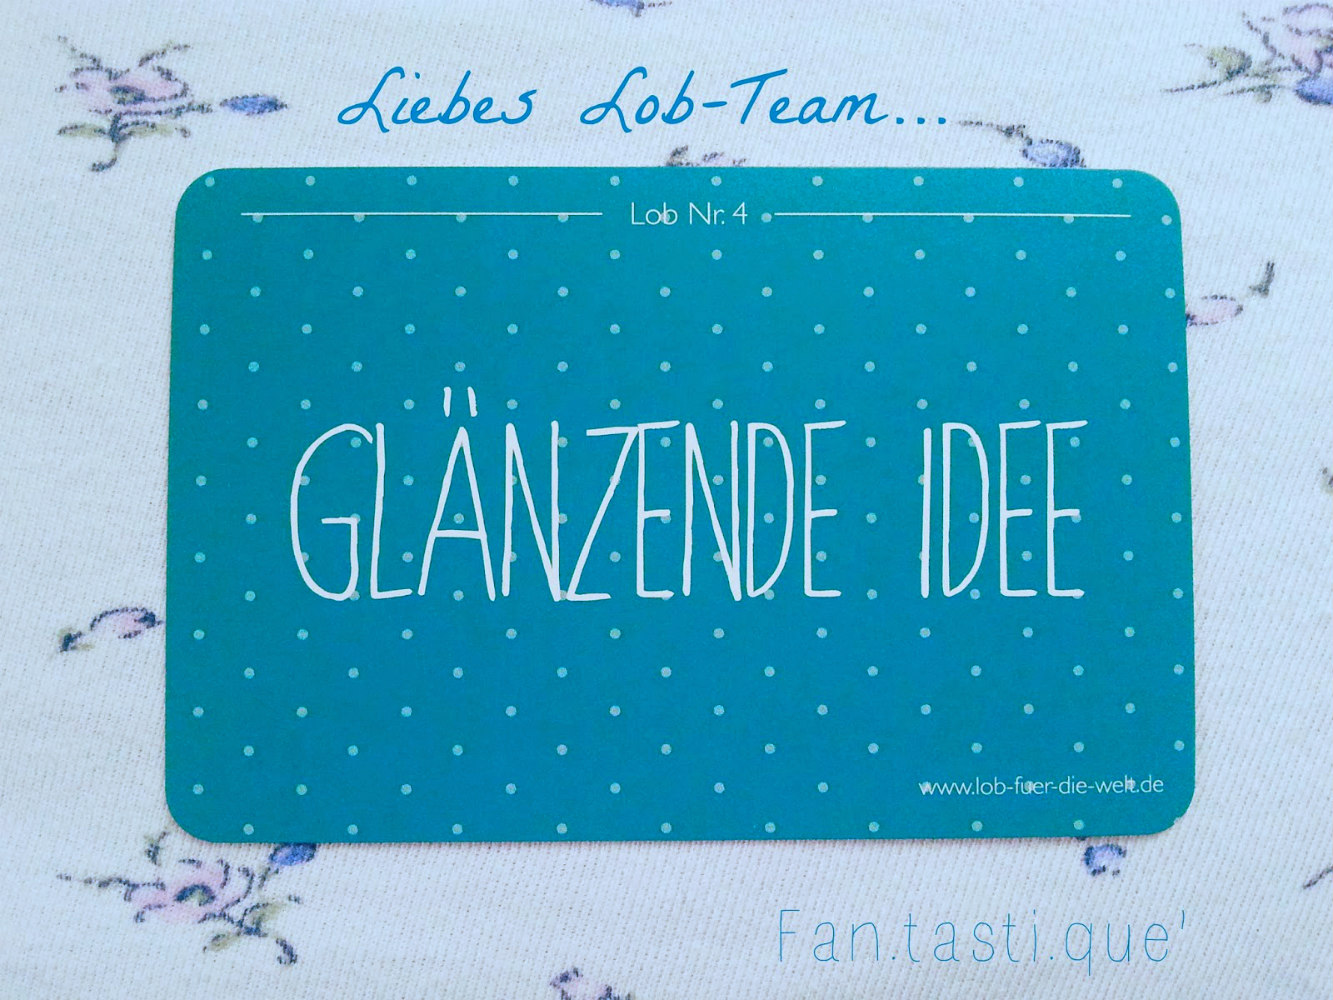 a turquoise Lobkarte saying Glänzende Idee dedicated to the Lob für die Welt team on a floral white piece of fabric